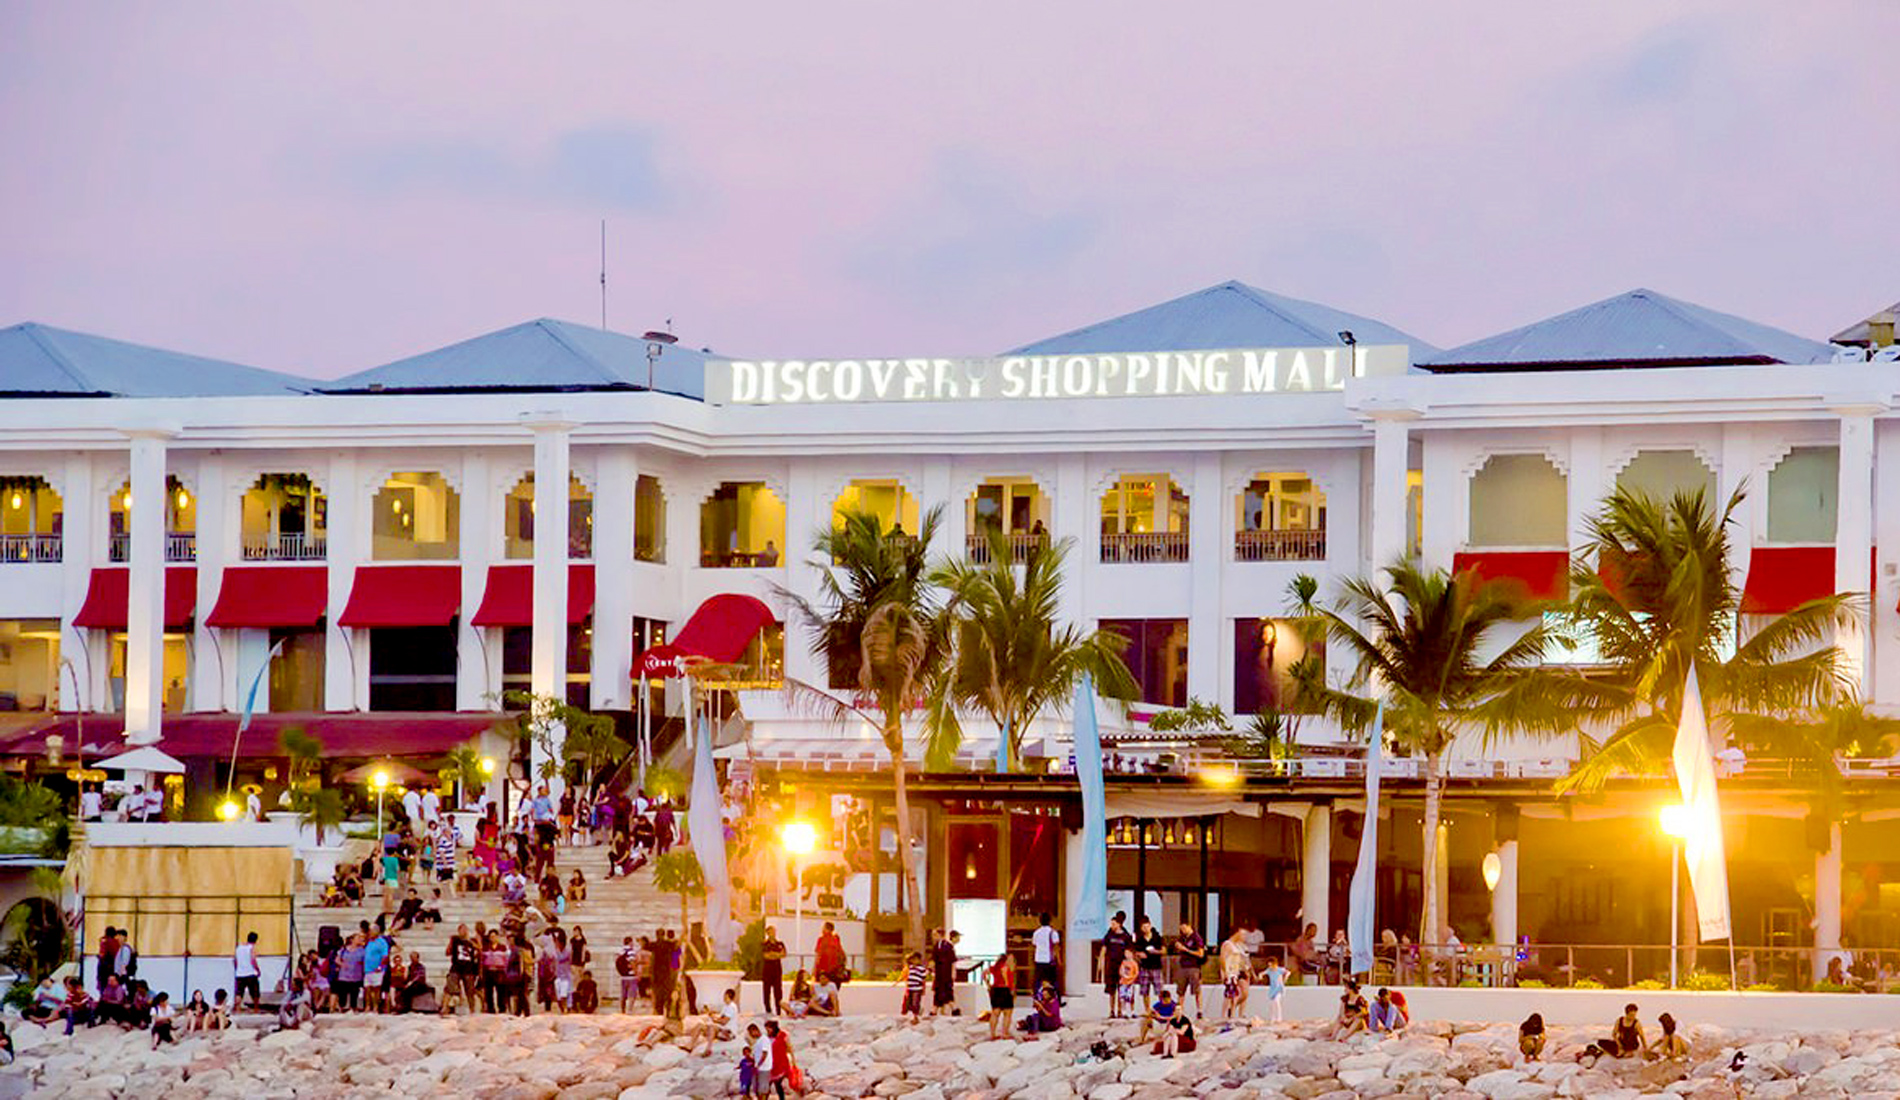 Discovery Shopping Mall - Things To Do in Bali Tours Activities